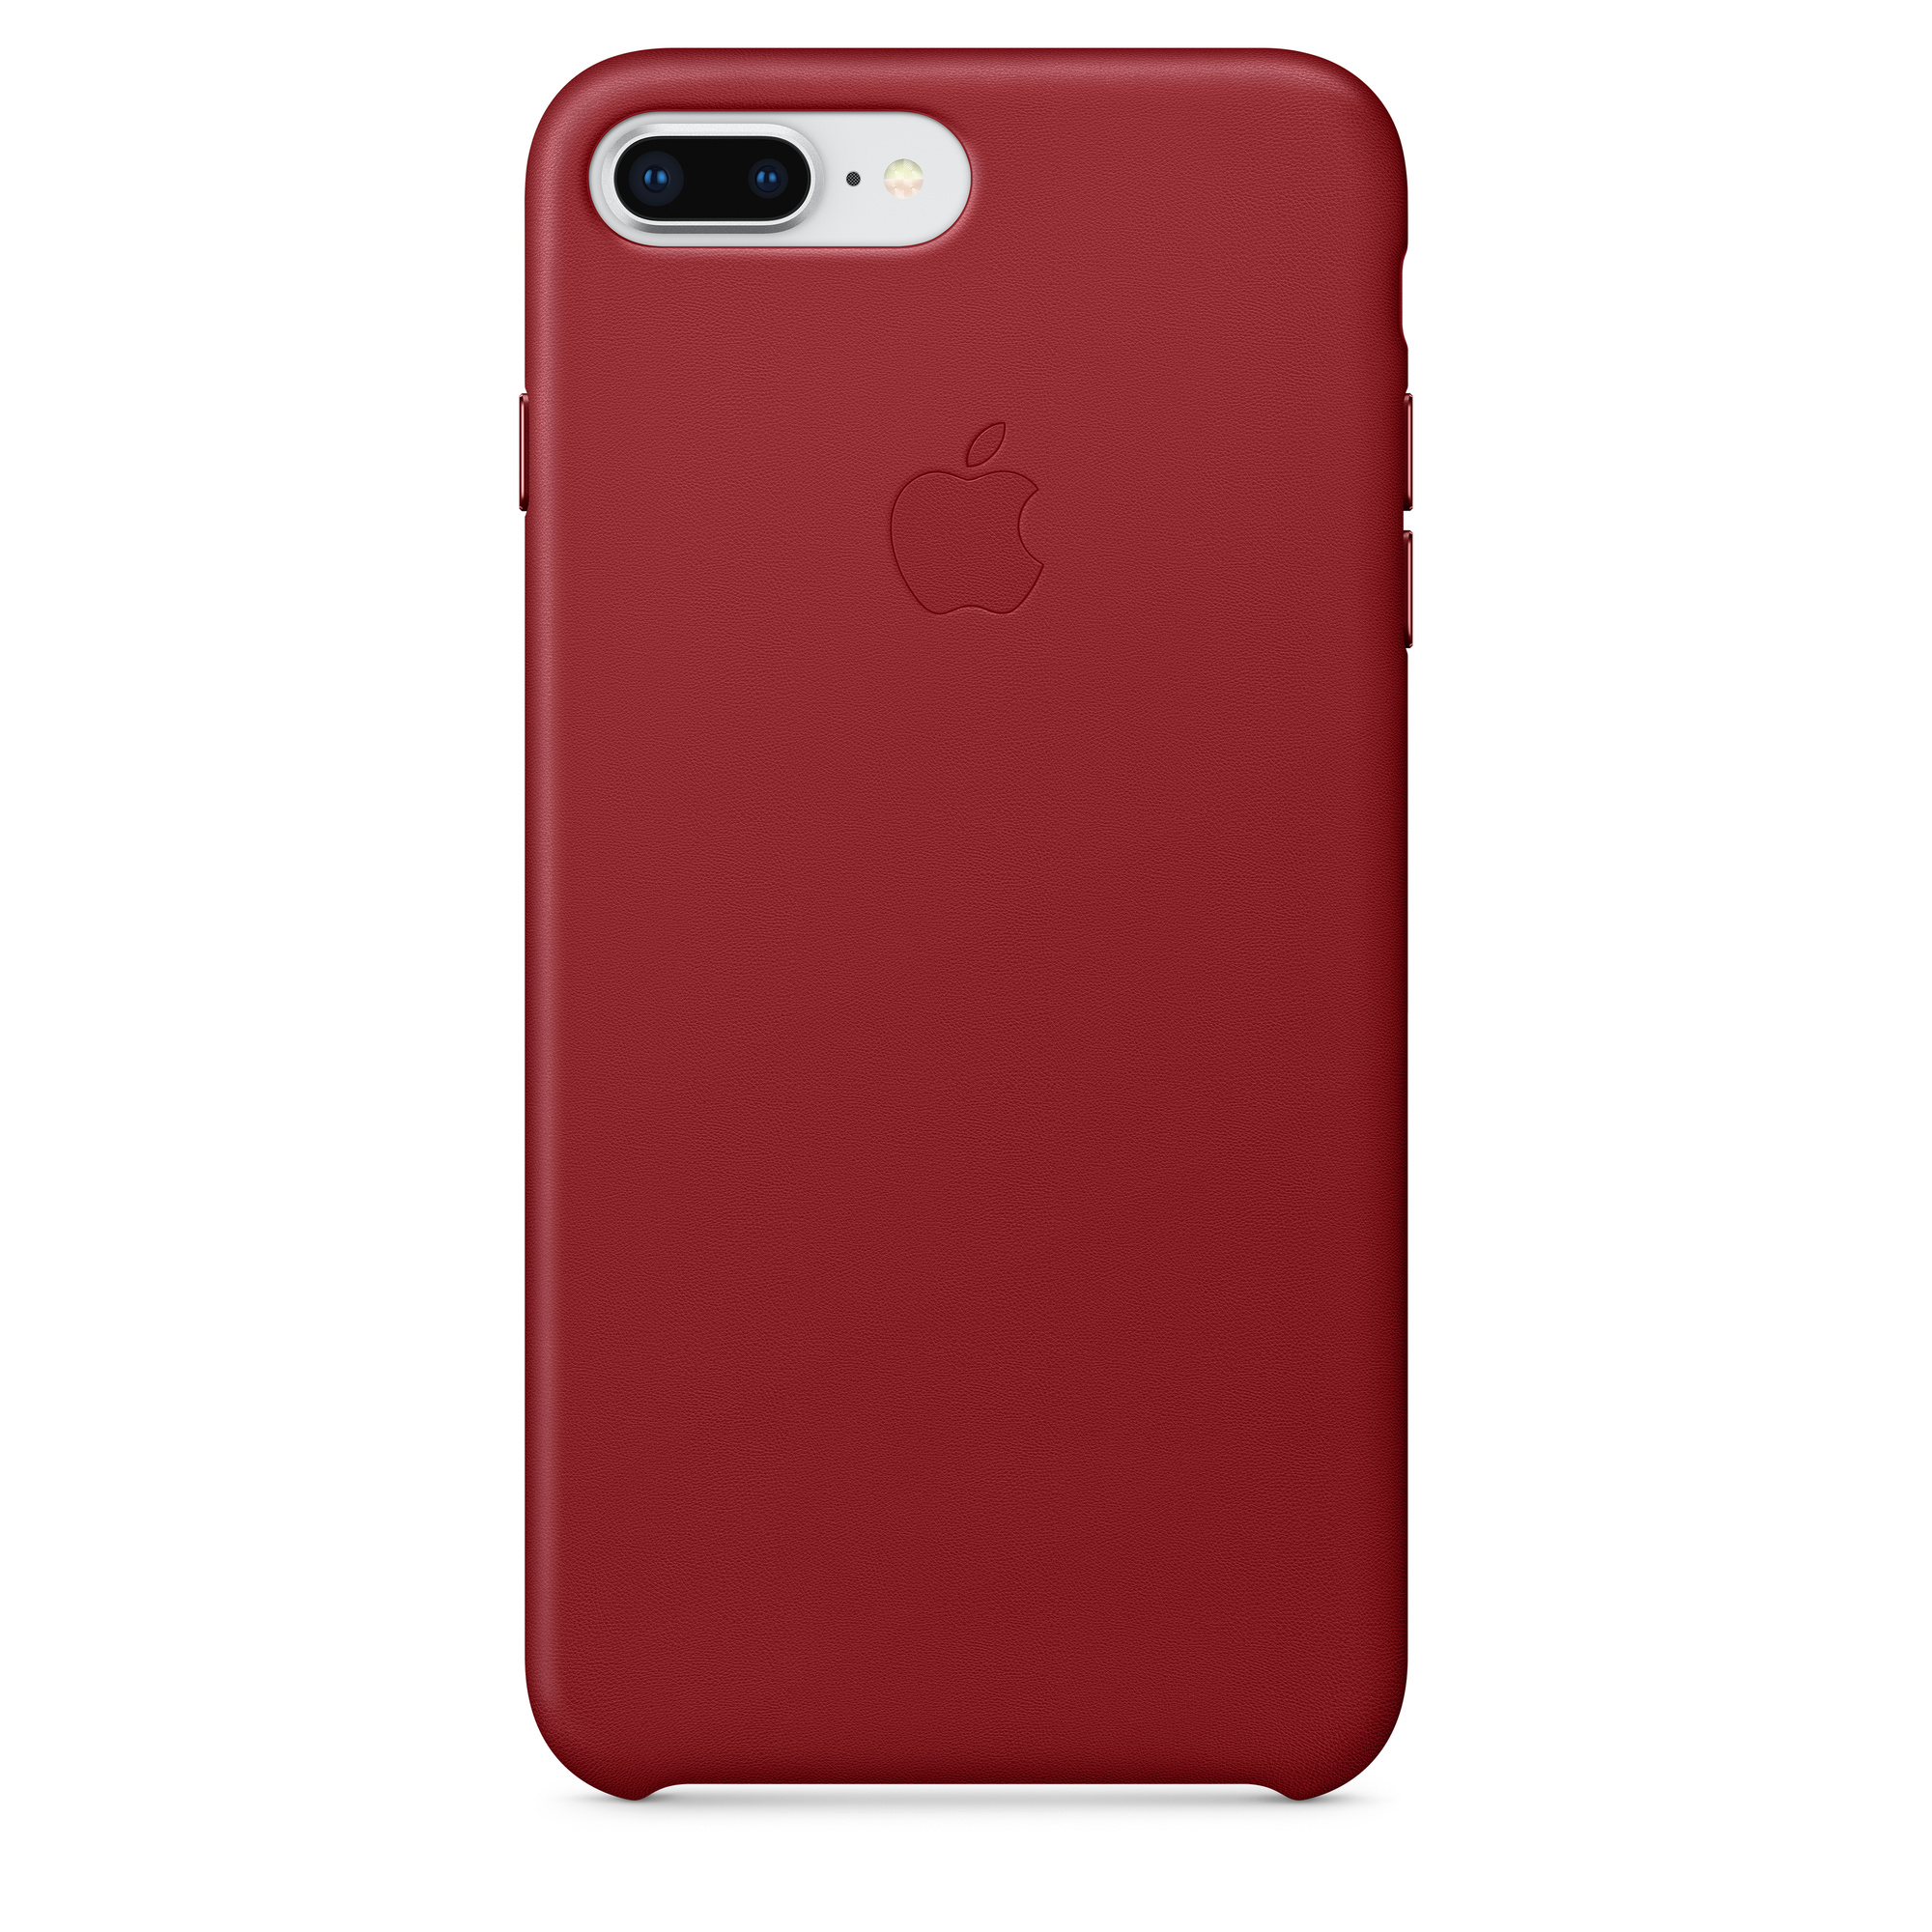 designer fashion e7d69 78304 iPhone 8 Plus / 7 Plus Leather Case - (PRODUCT)RED